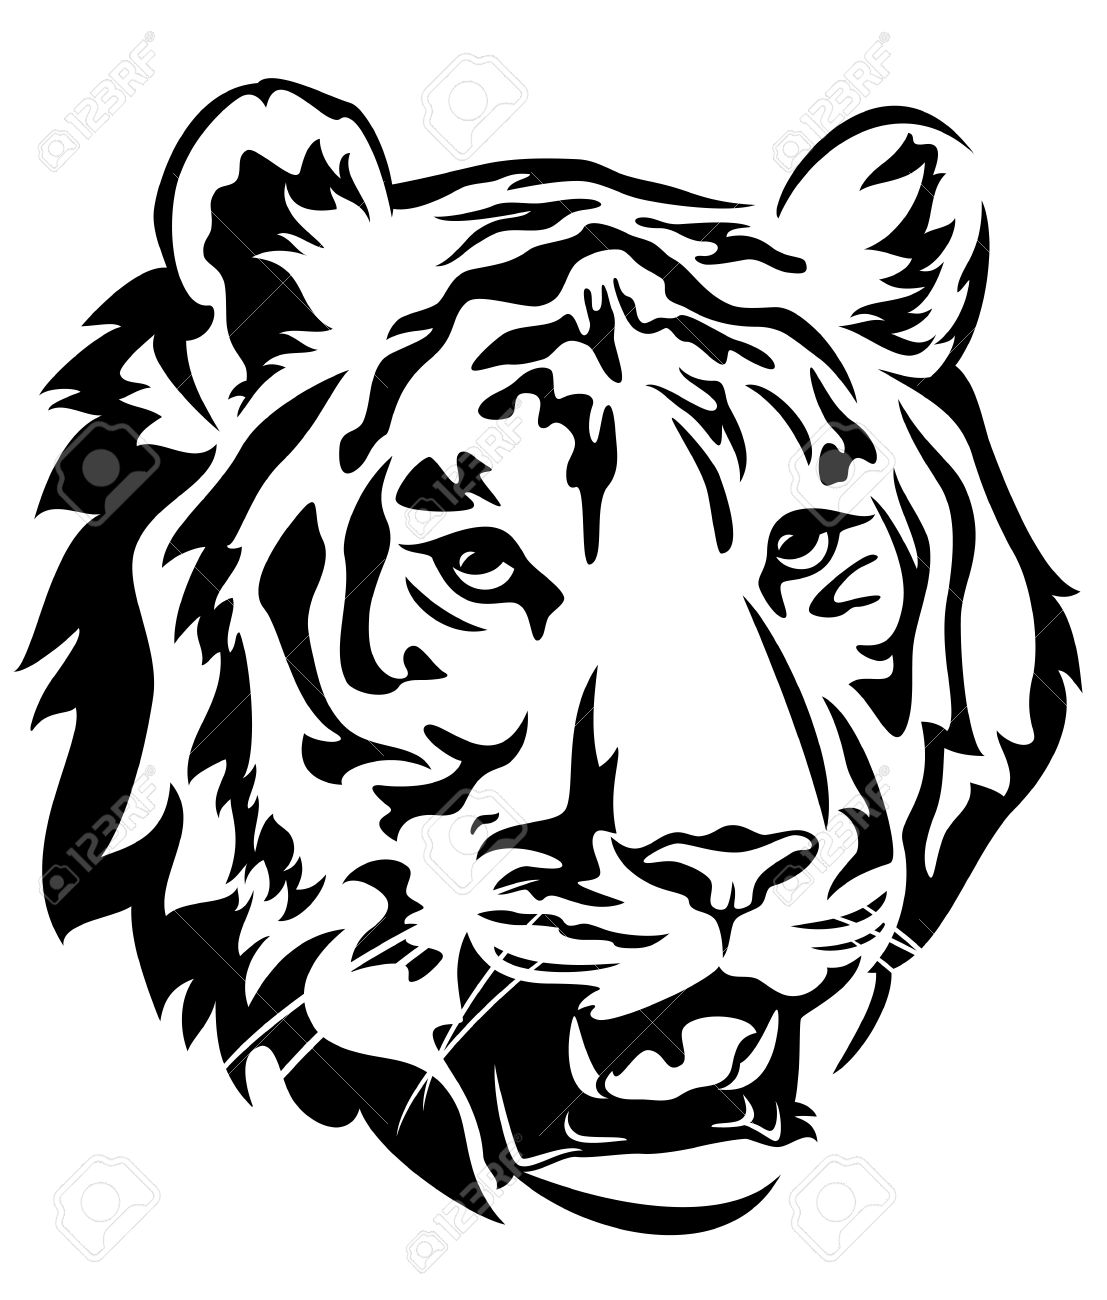 tiger head emblem design big cat black and white vector outline rh 123rf com tiger head clip art toothless tiger head clipart black and white